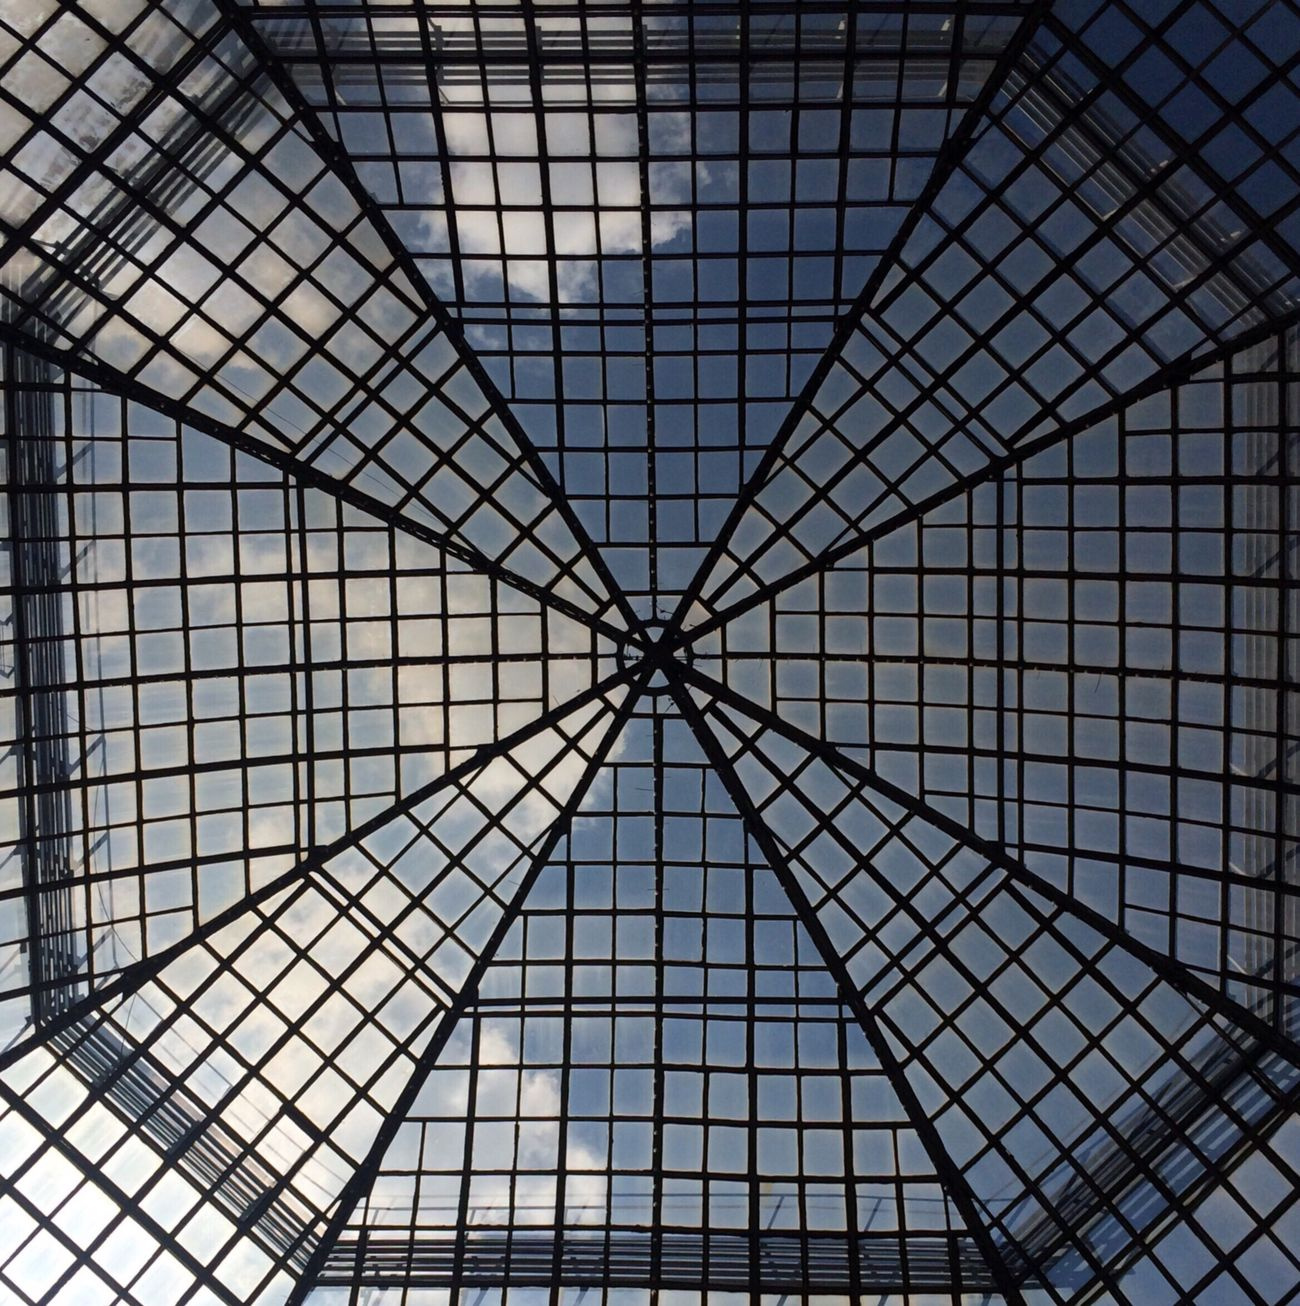 Indoors  Ceiling Roof Architecture No People Modern Low Angle View Sky Built Structure Skylight Russia Moscow Urban Geometry Geometric Shape Minimalism Shopping Mall Underground Architectural Feature Backgrounds Full Frame Pattern Day Close-up